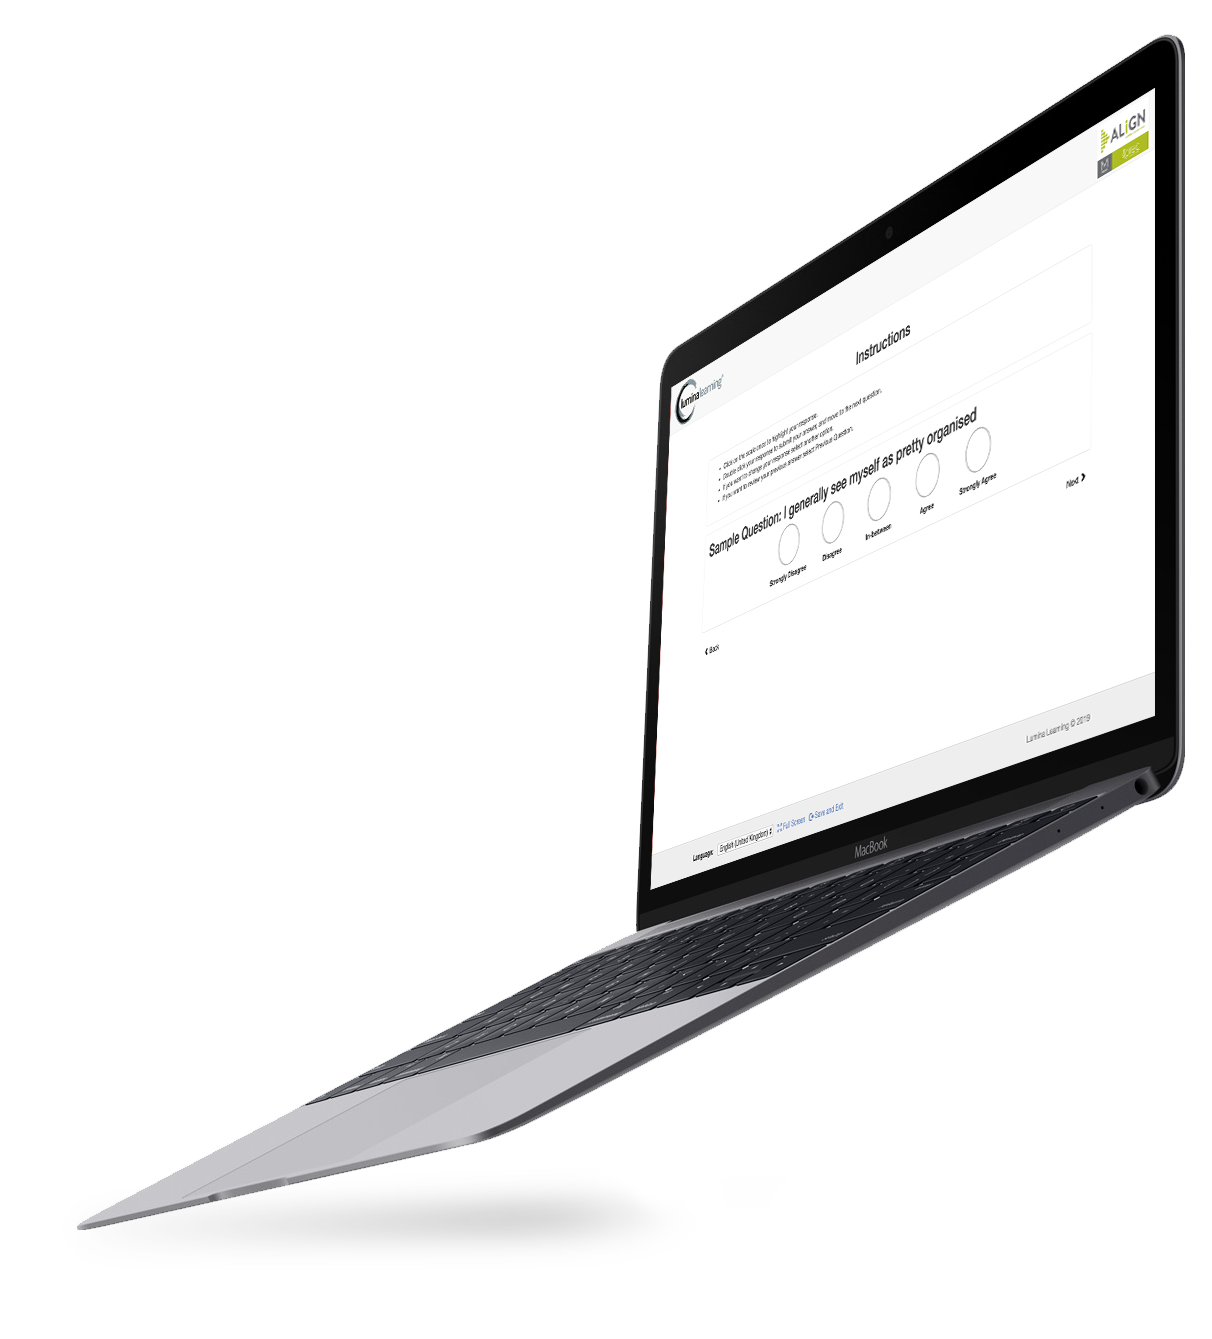 Laptop with ALiGN's personality assessment displayed